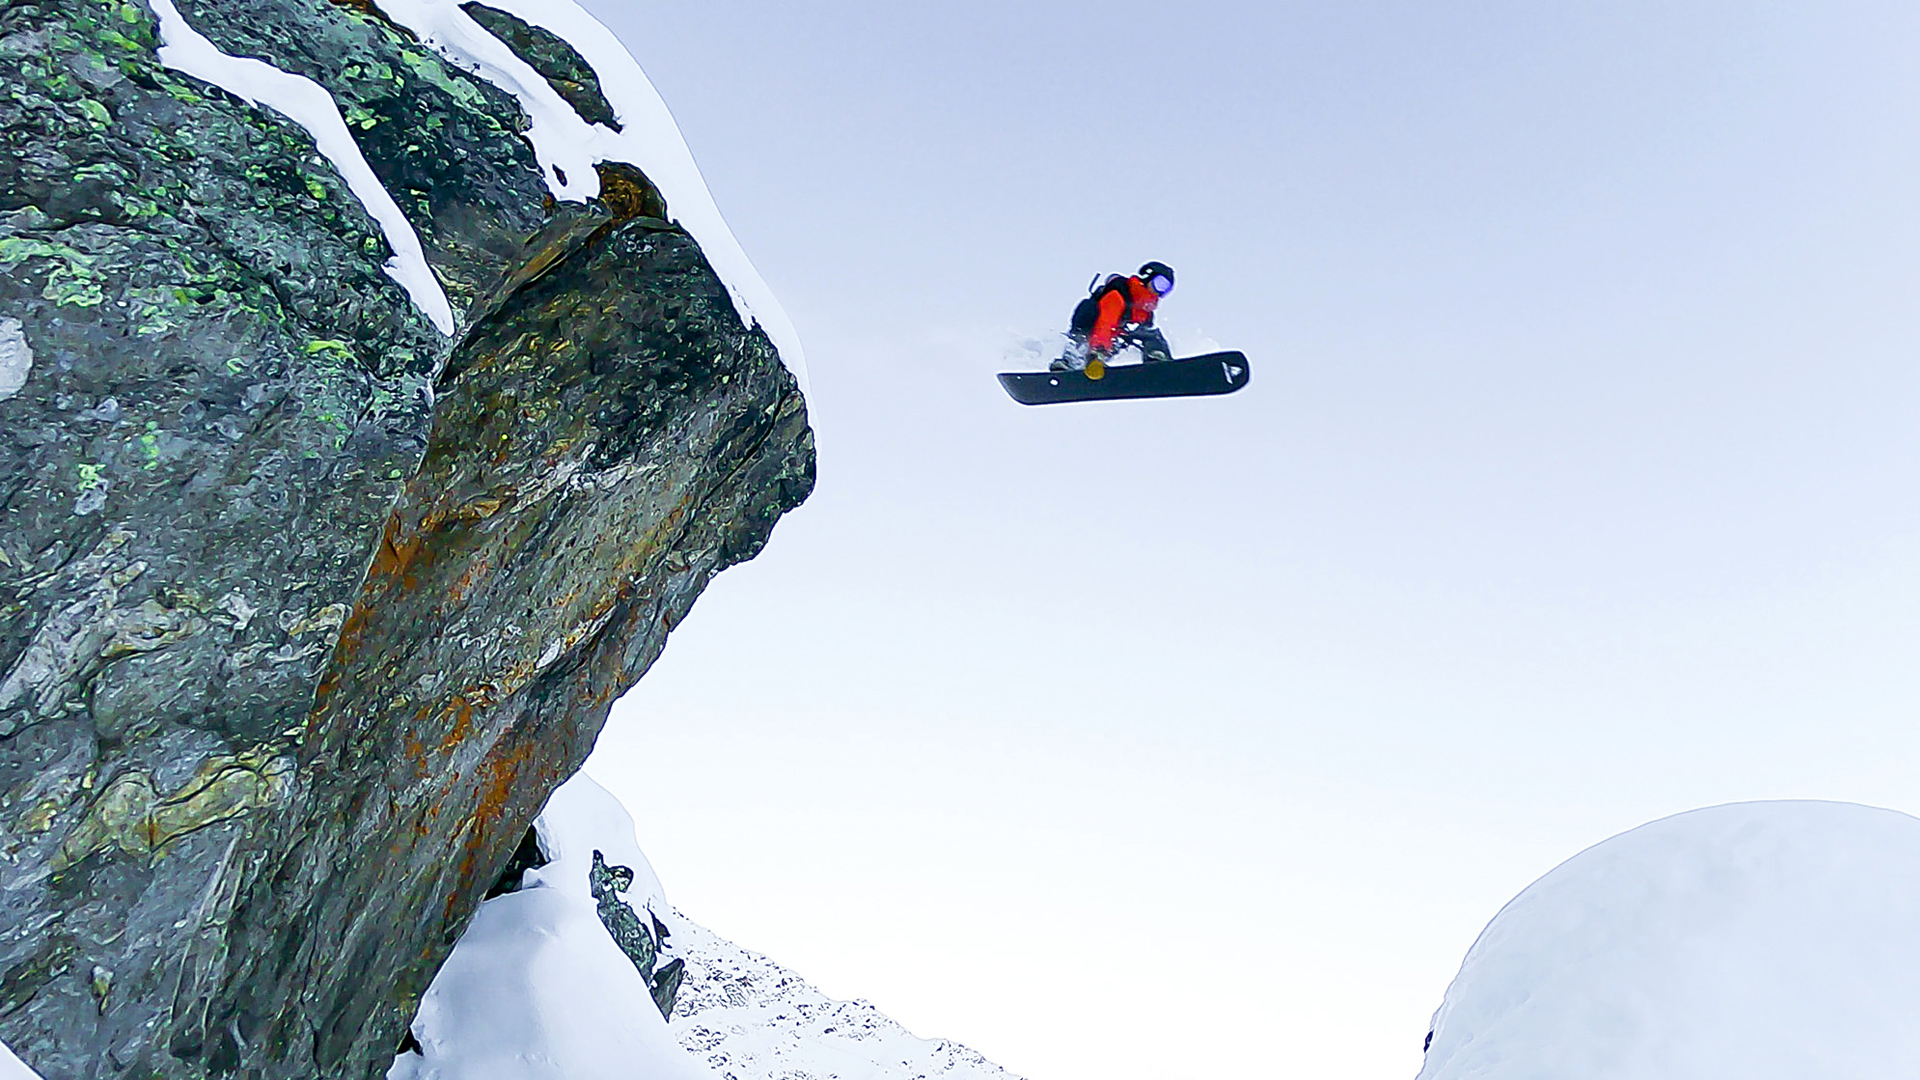 VIDEO: Fearless Snowboarder Takes on a Ridge Too Far